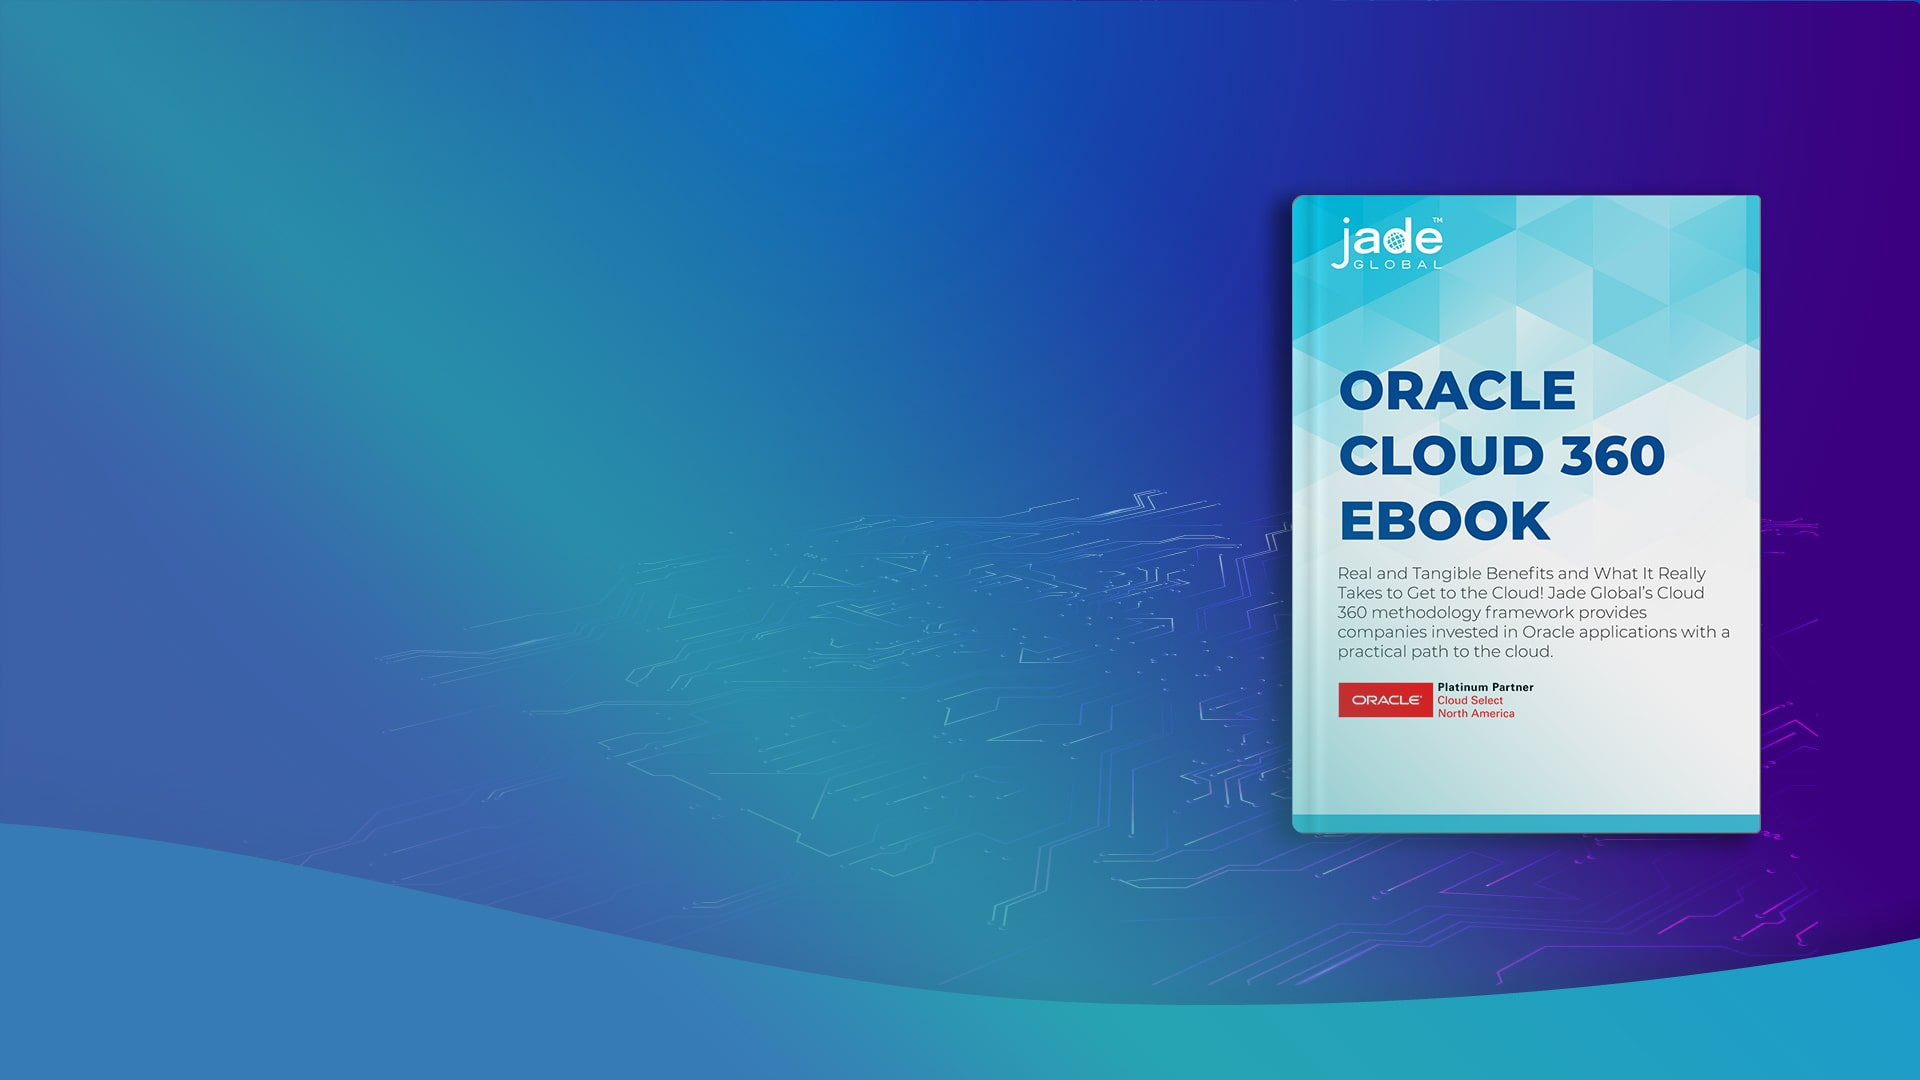 Oracle 360 Ebook